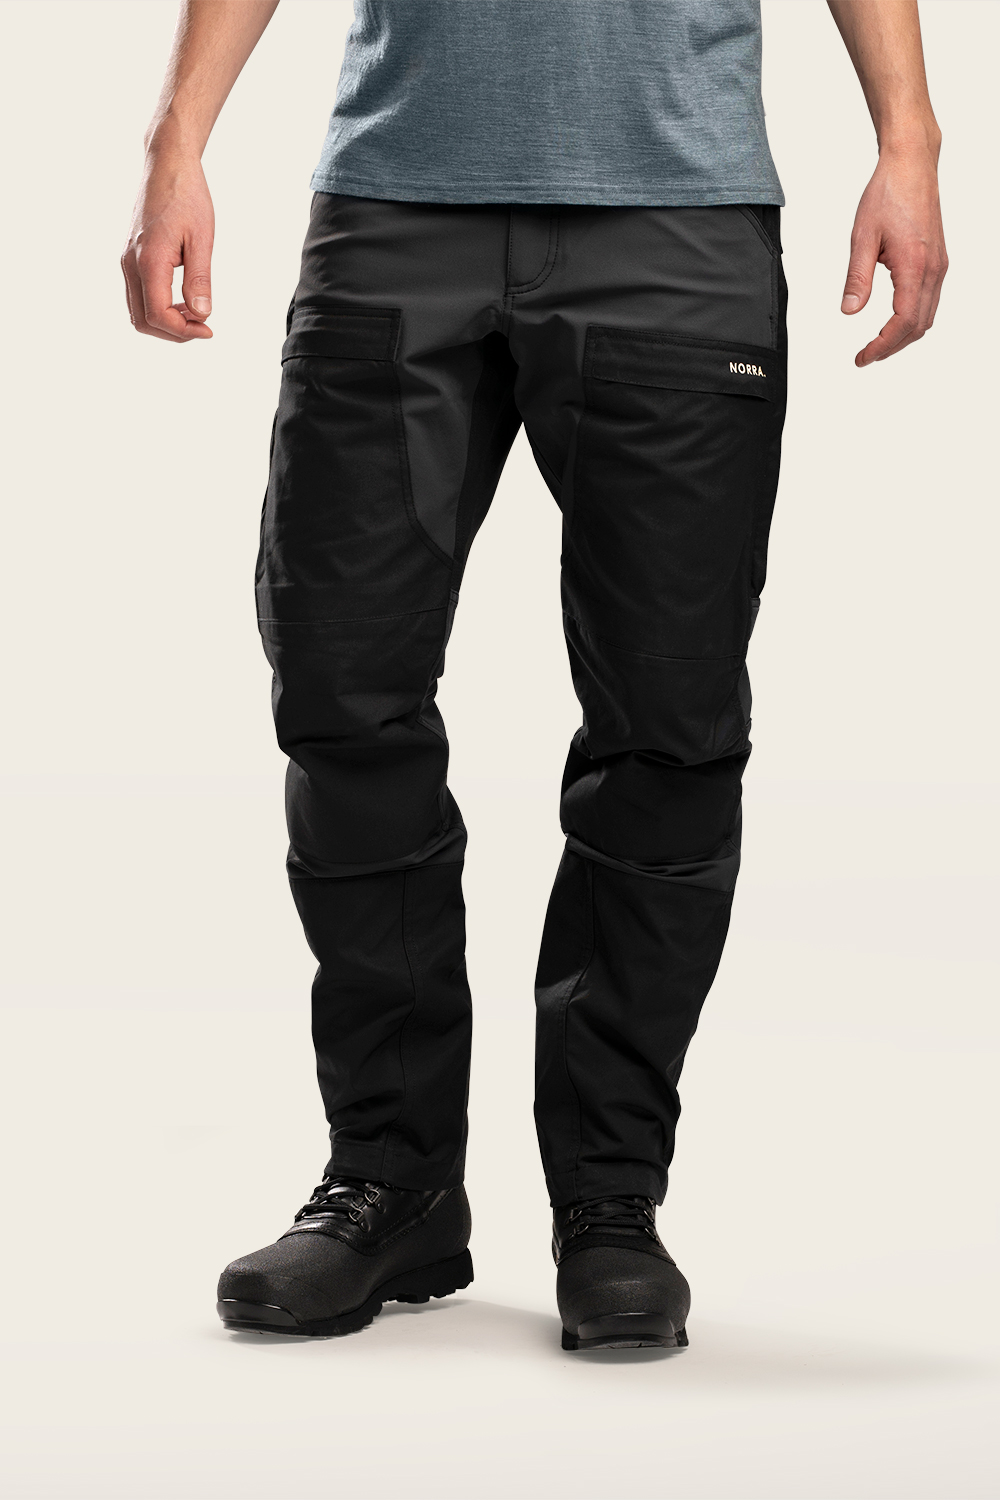 Norra Ljung Outdoor Pants Men front view